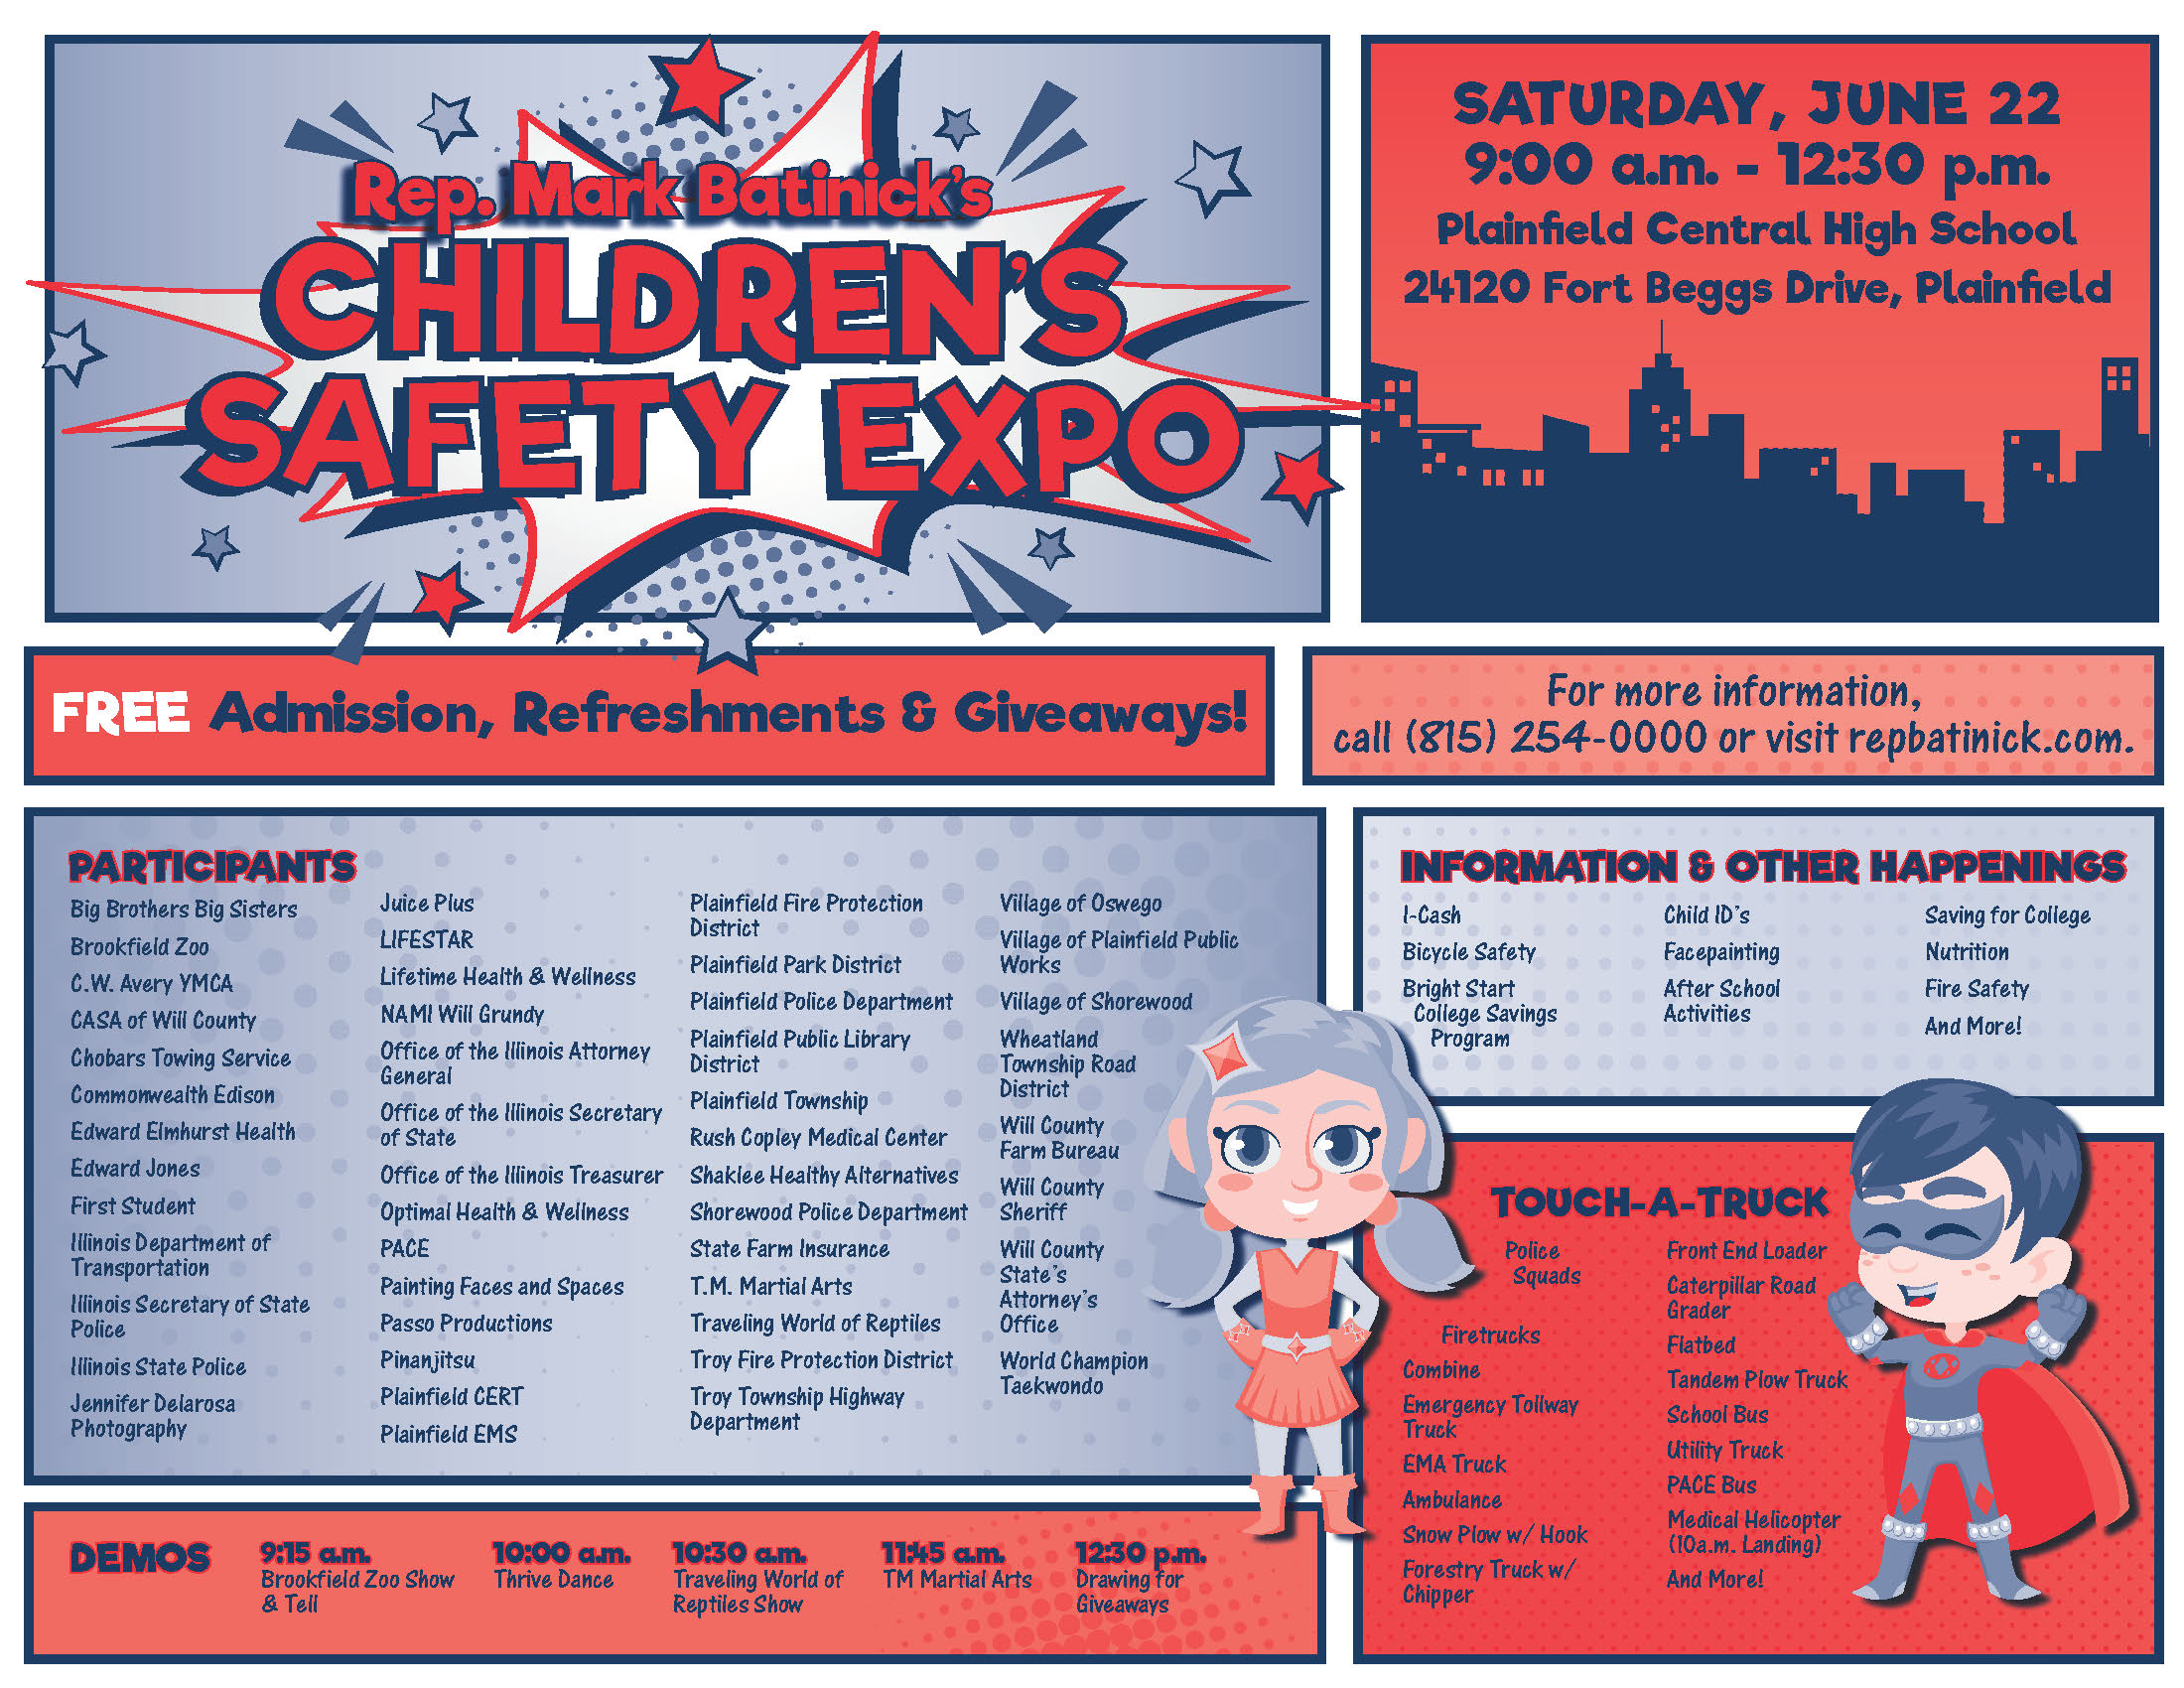 Batinick's Children's Safety Expo Set for June 22nd - Mark Batinick